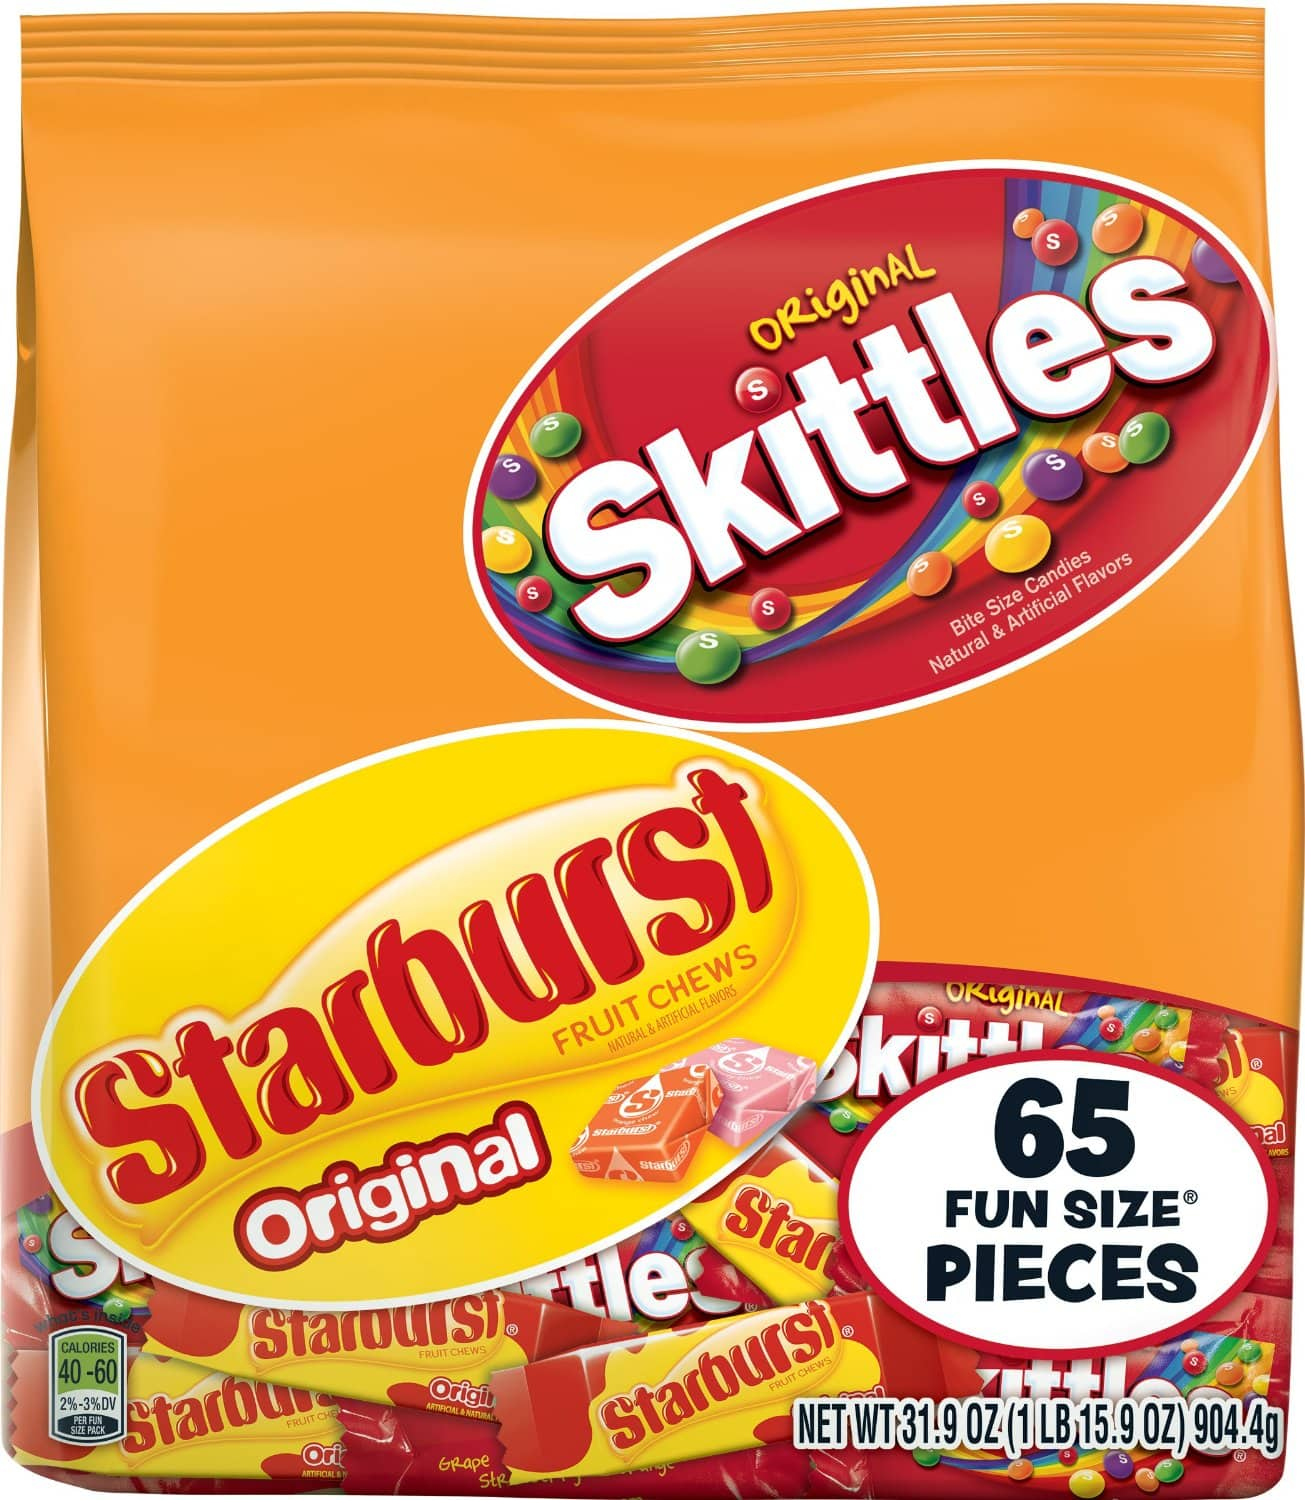 Skittles and Starburst Original Halloween Candy Bag, 65 Fun Size Pieces $5.68 or less plus more candy deals